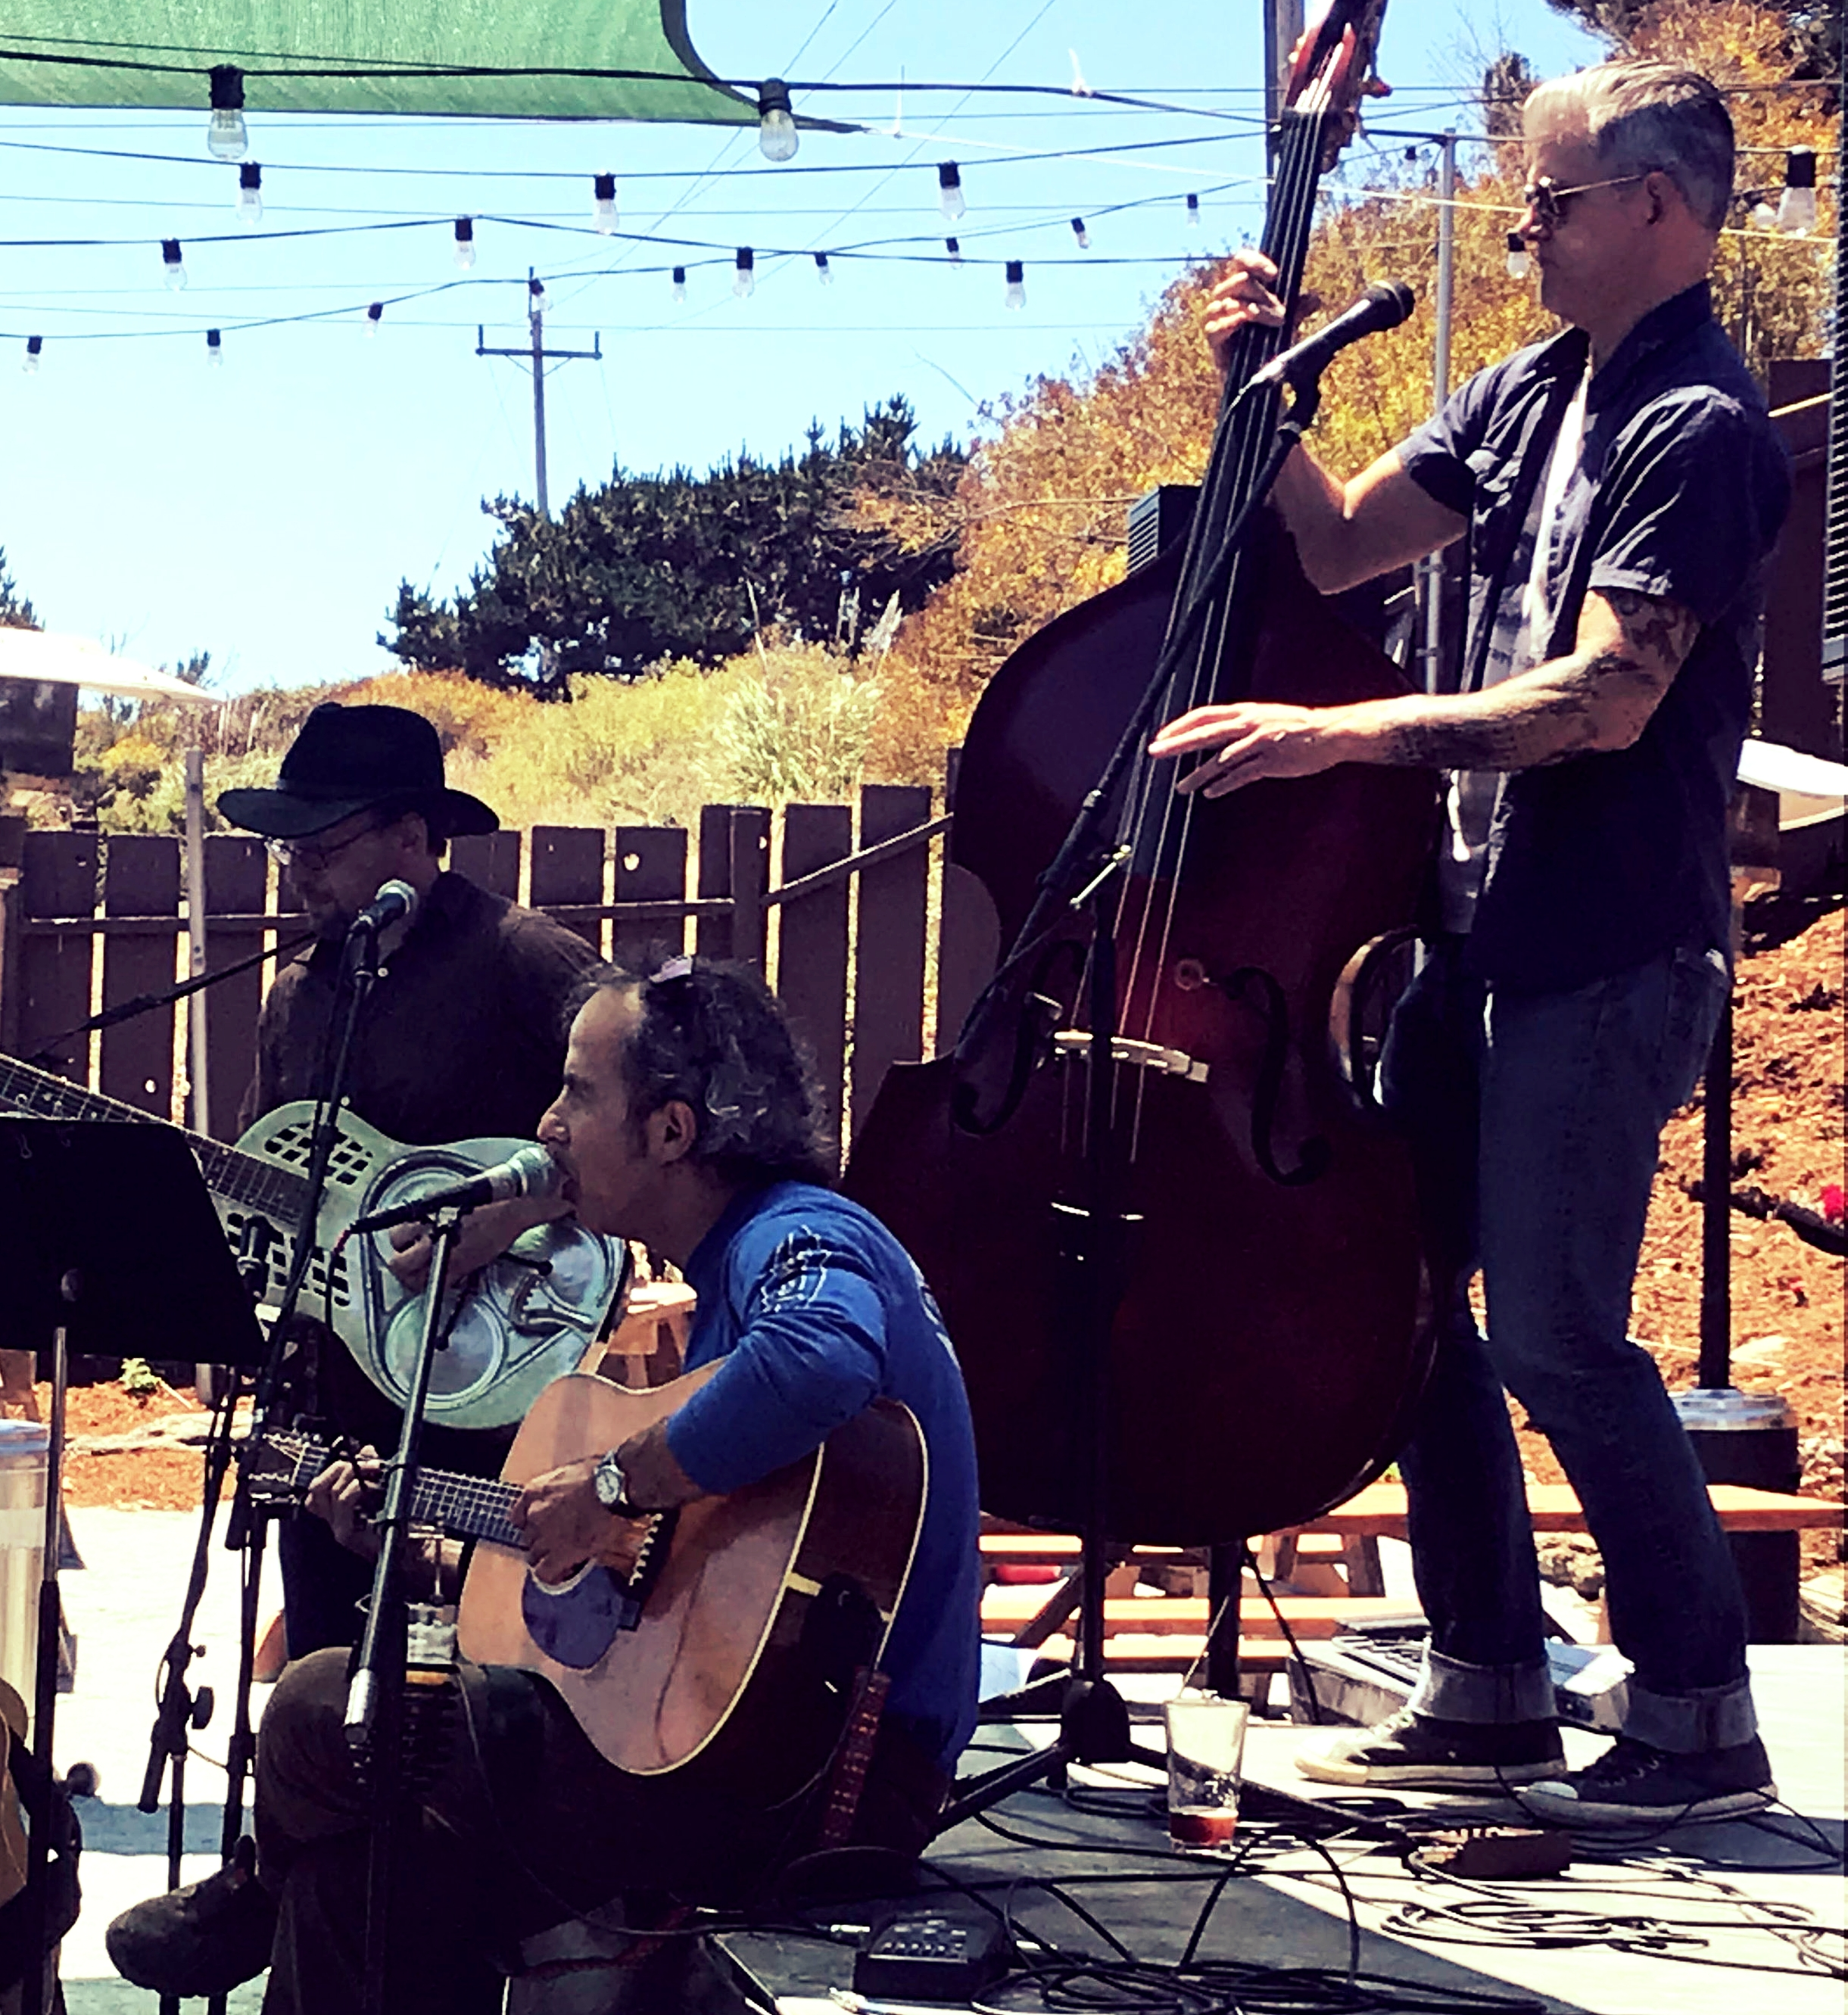 TASTE OUR LOCAL MUSIC SCENE,,AS ECLECTIC & COASTAL AS WE ARE! - FOLLOW US @HWY1BC #SLOWCOAST